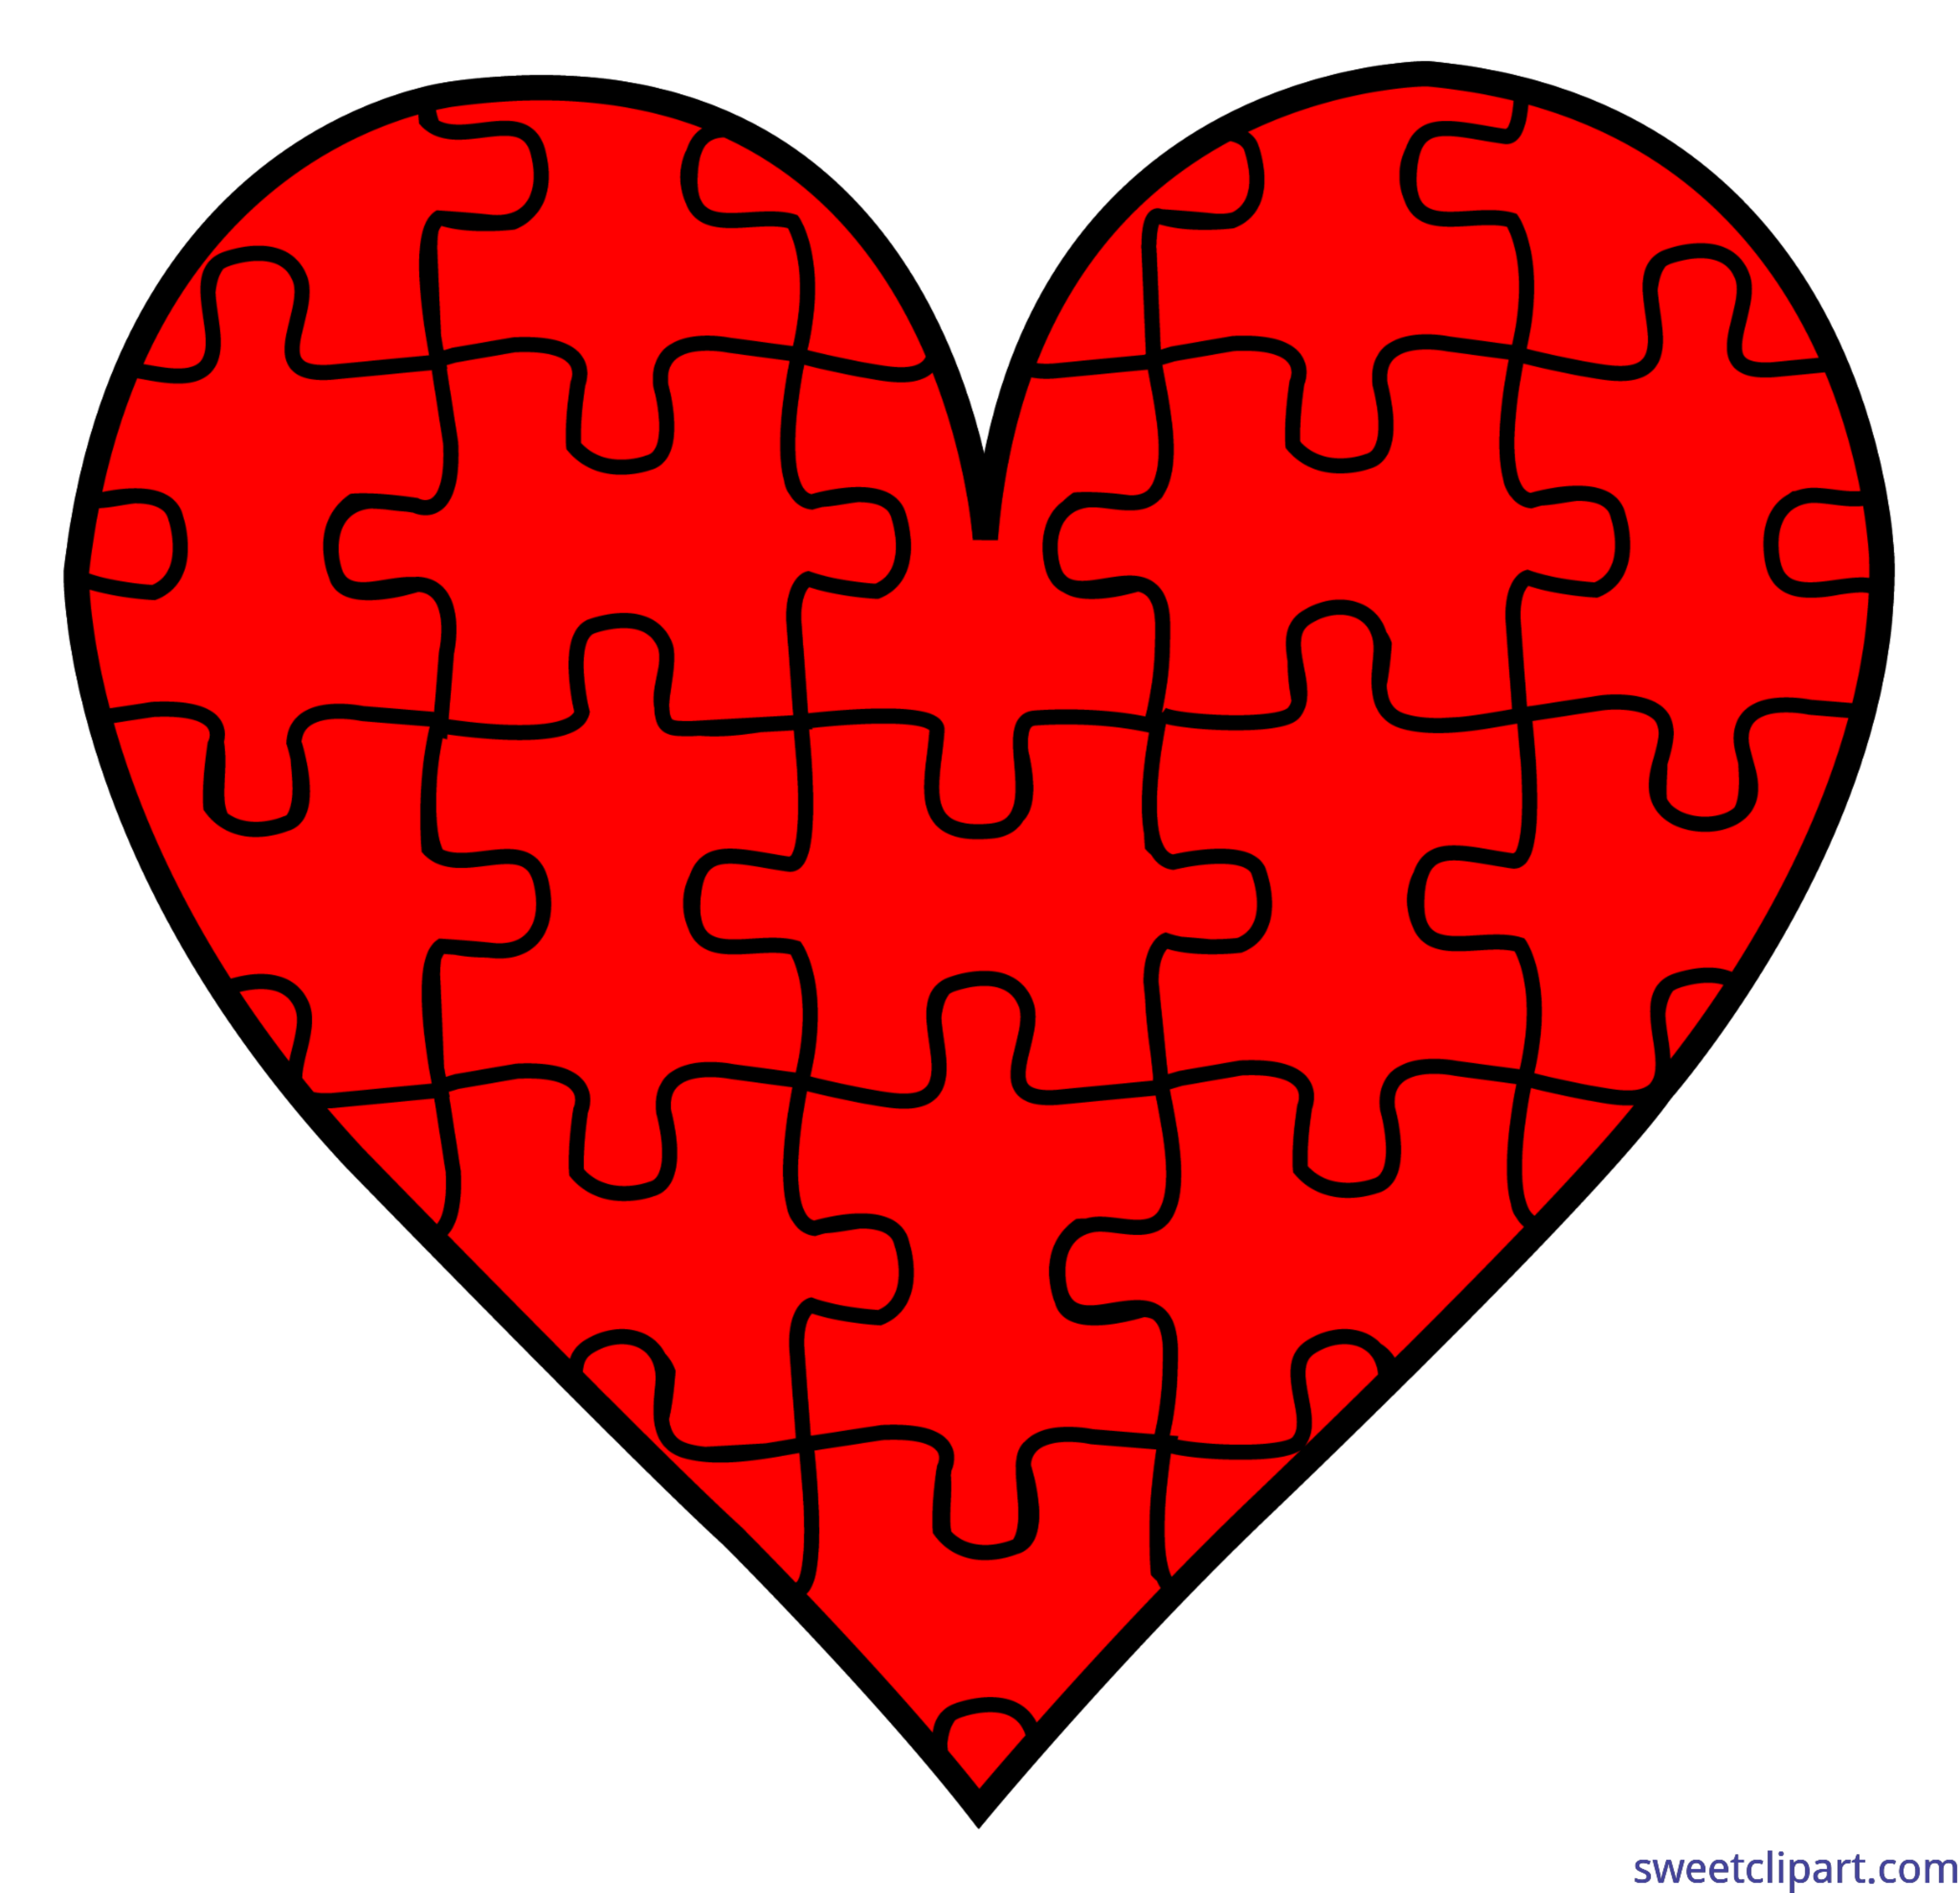 Puzzle heart clipart clip art freeuse library Valentines Symbols Puzzle Heart Clip Art - Sweet Clip Art clip art freeuse library